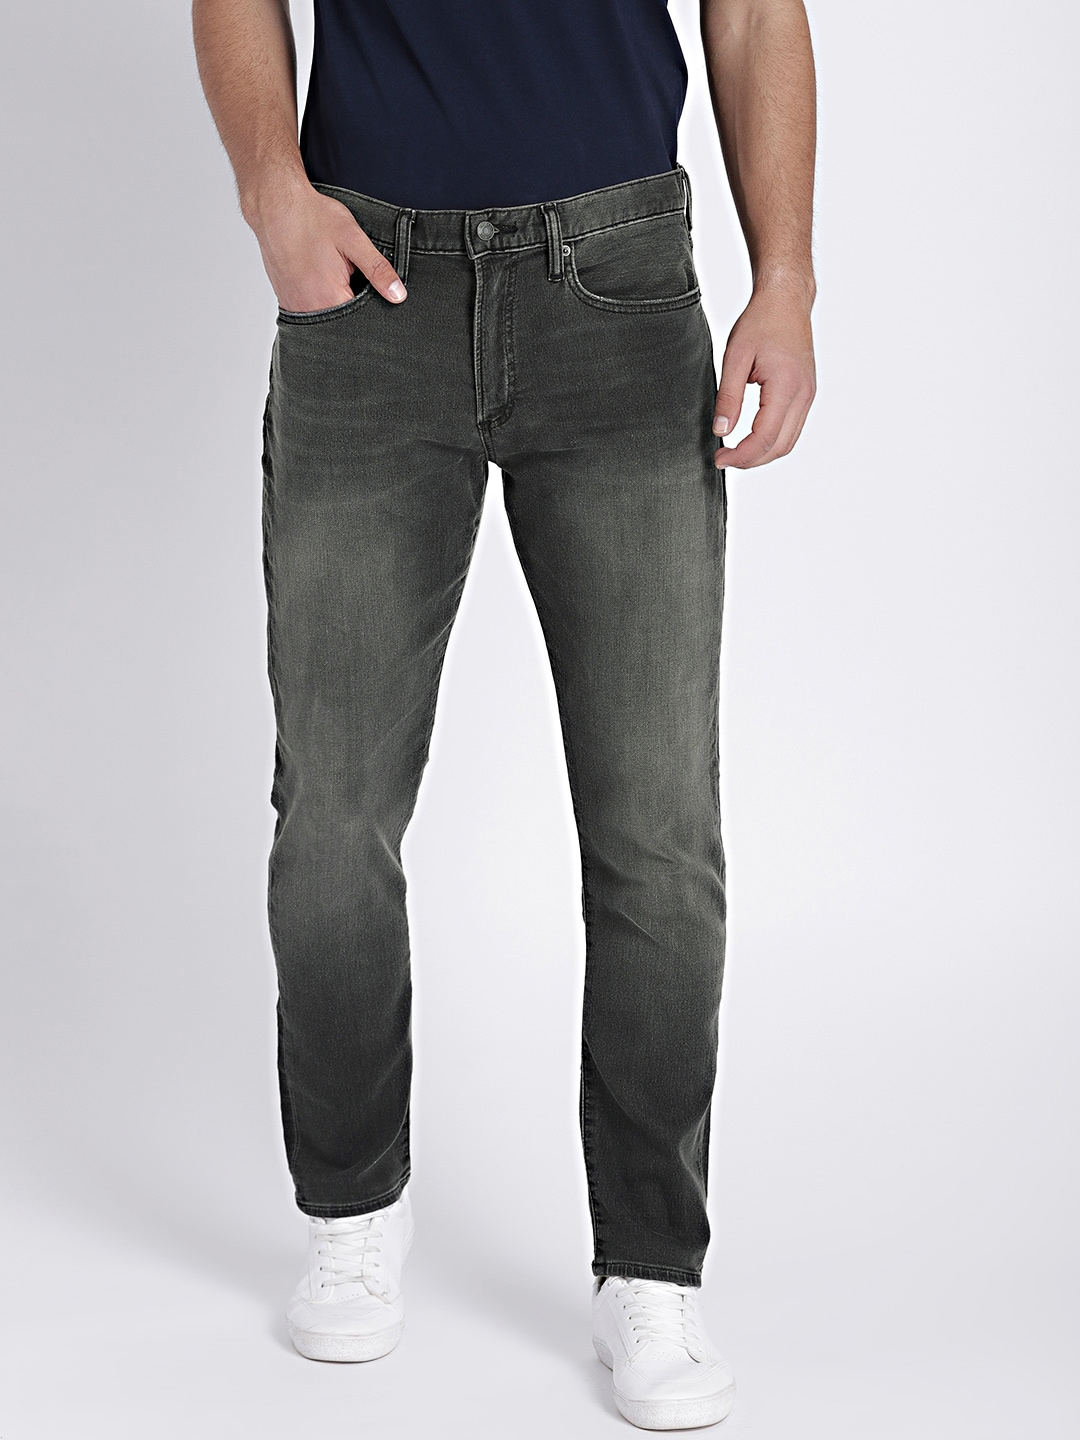 8eb35e349ad GAP - Shop from GAP Latest Collection Online